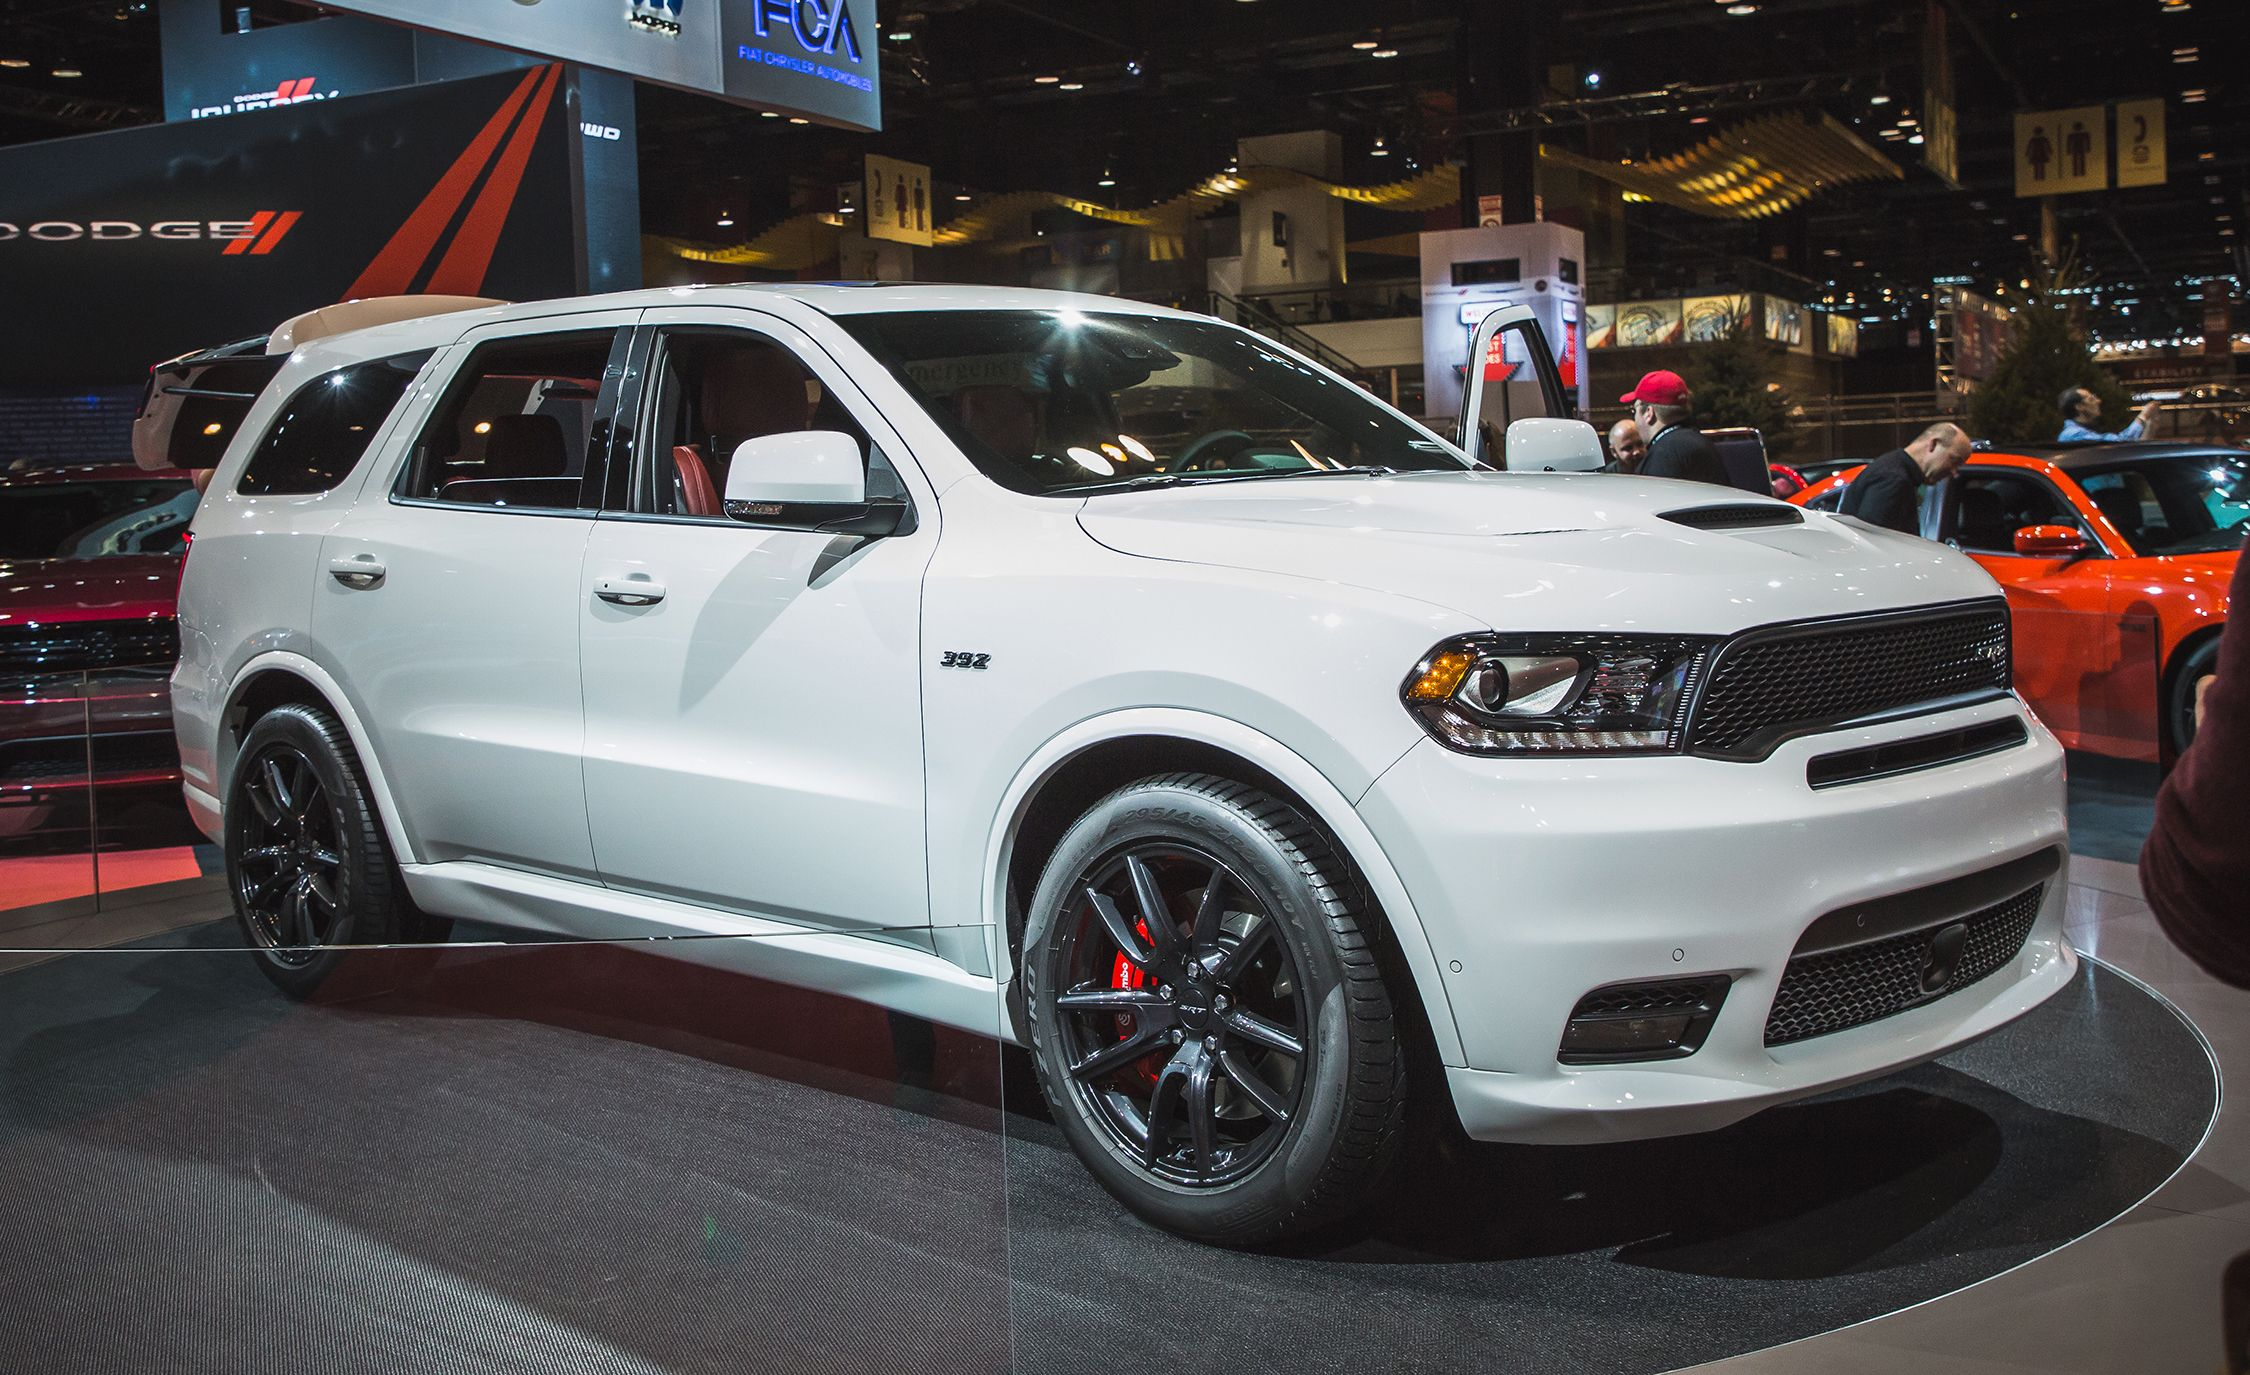 2018 Dodge Durango Srt Photos And Info News Car And Driver